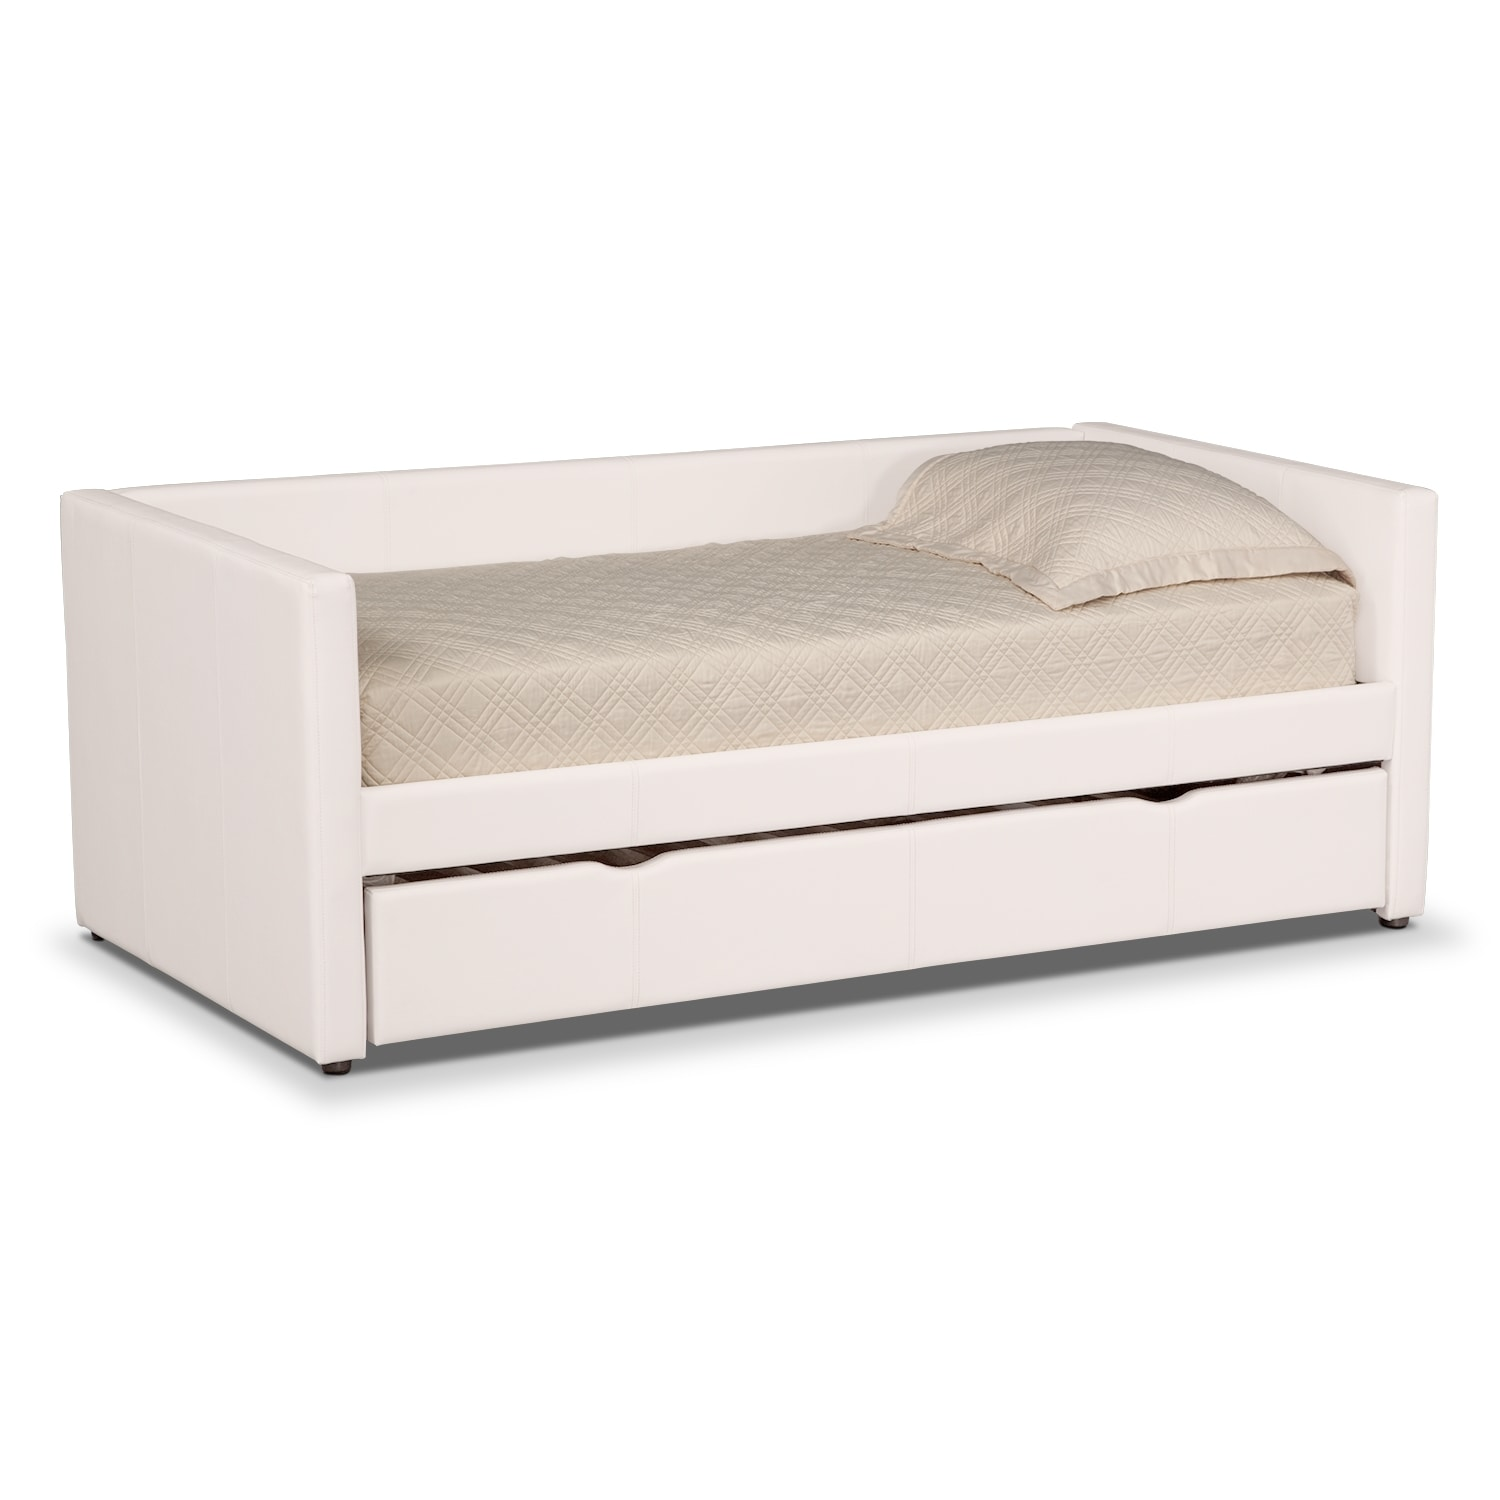 Carey iv twin daybed with trundle value city furniture Daybeds with storage